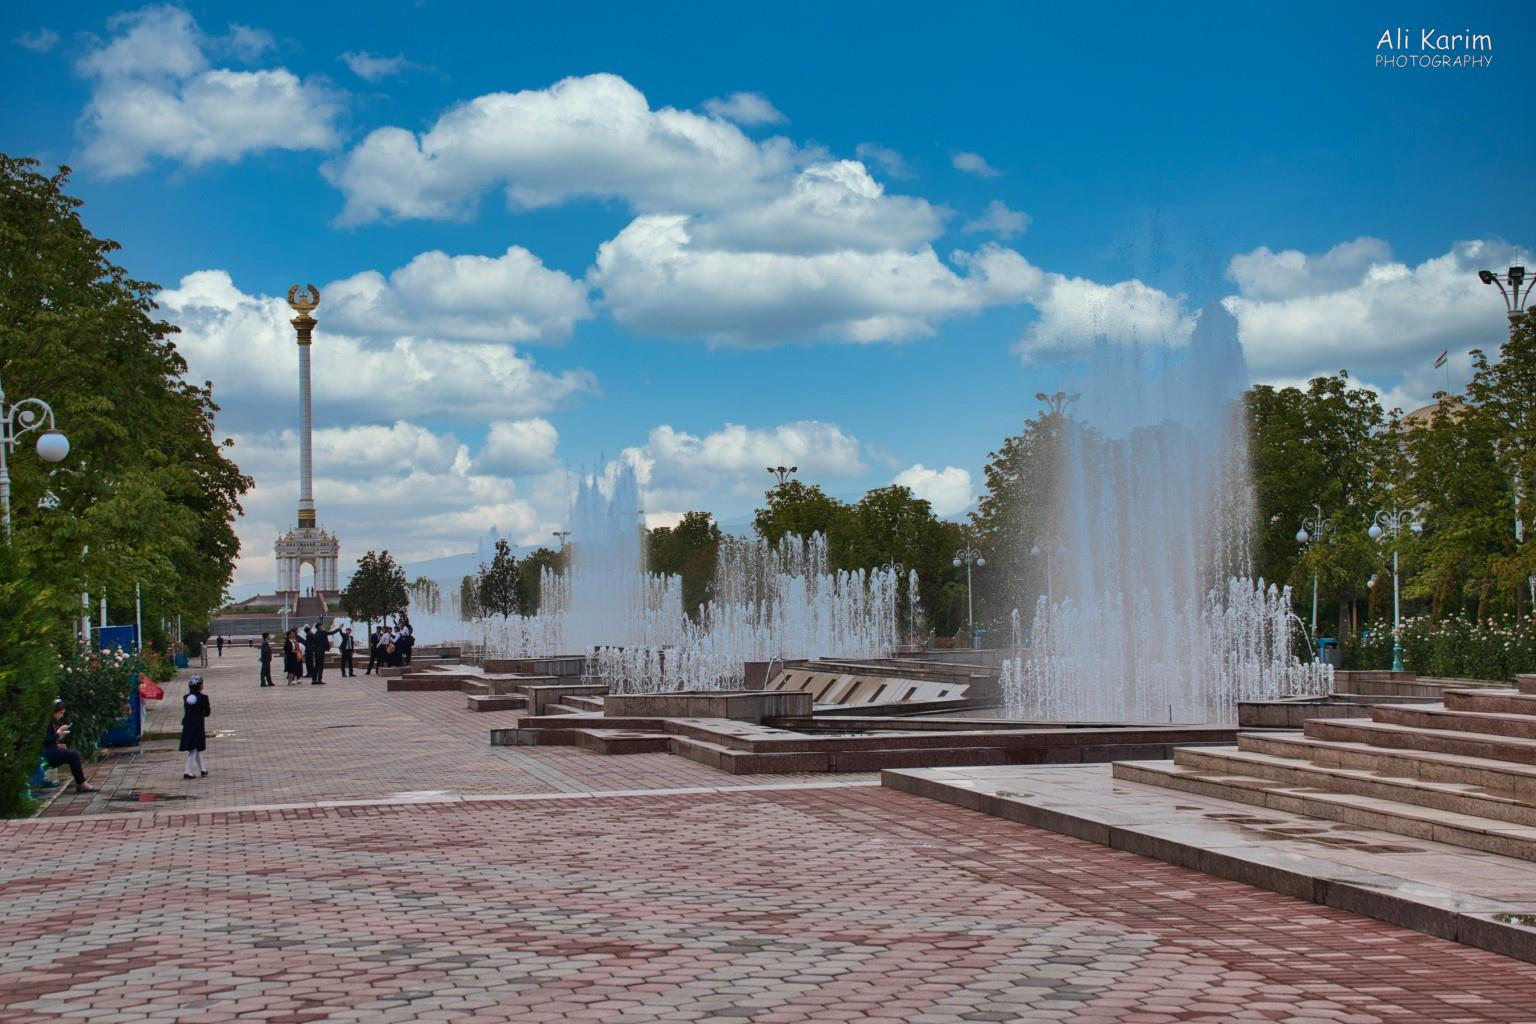 More Dushanbe, Tajikistan Fountains behind the Ismoil Somoni statue